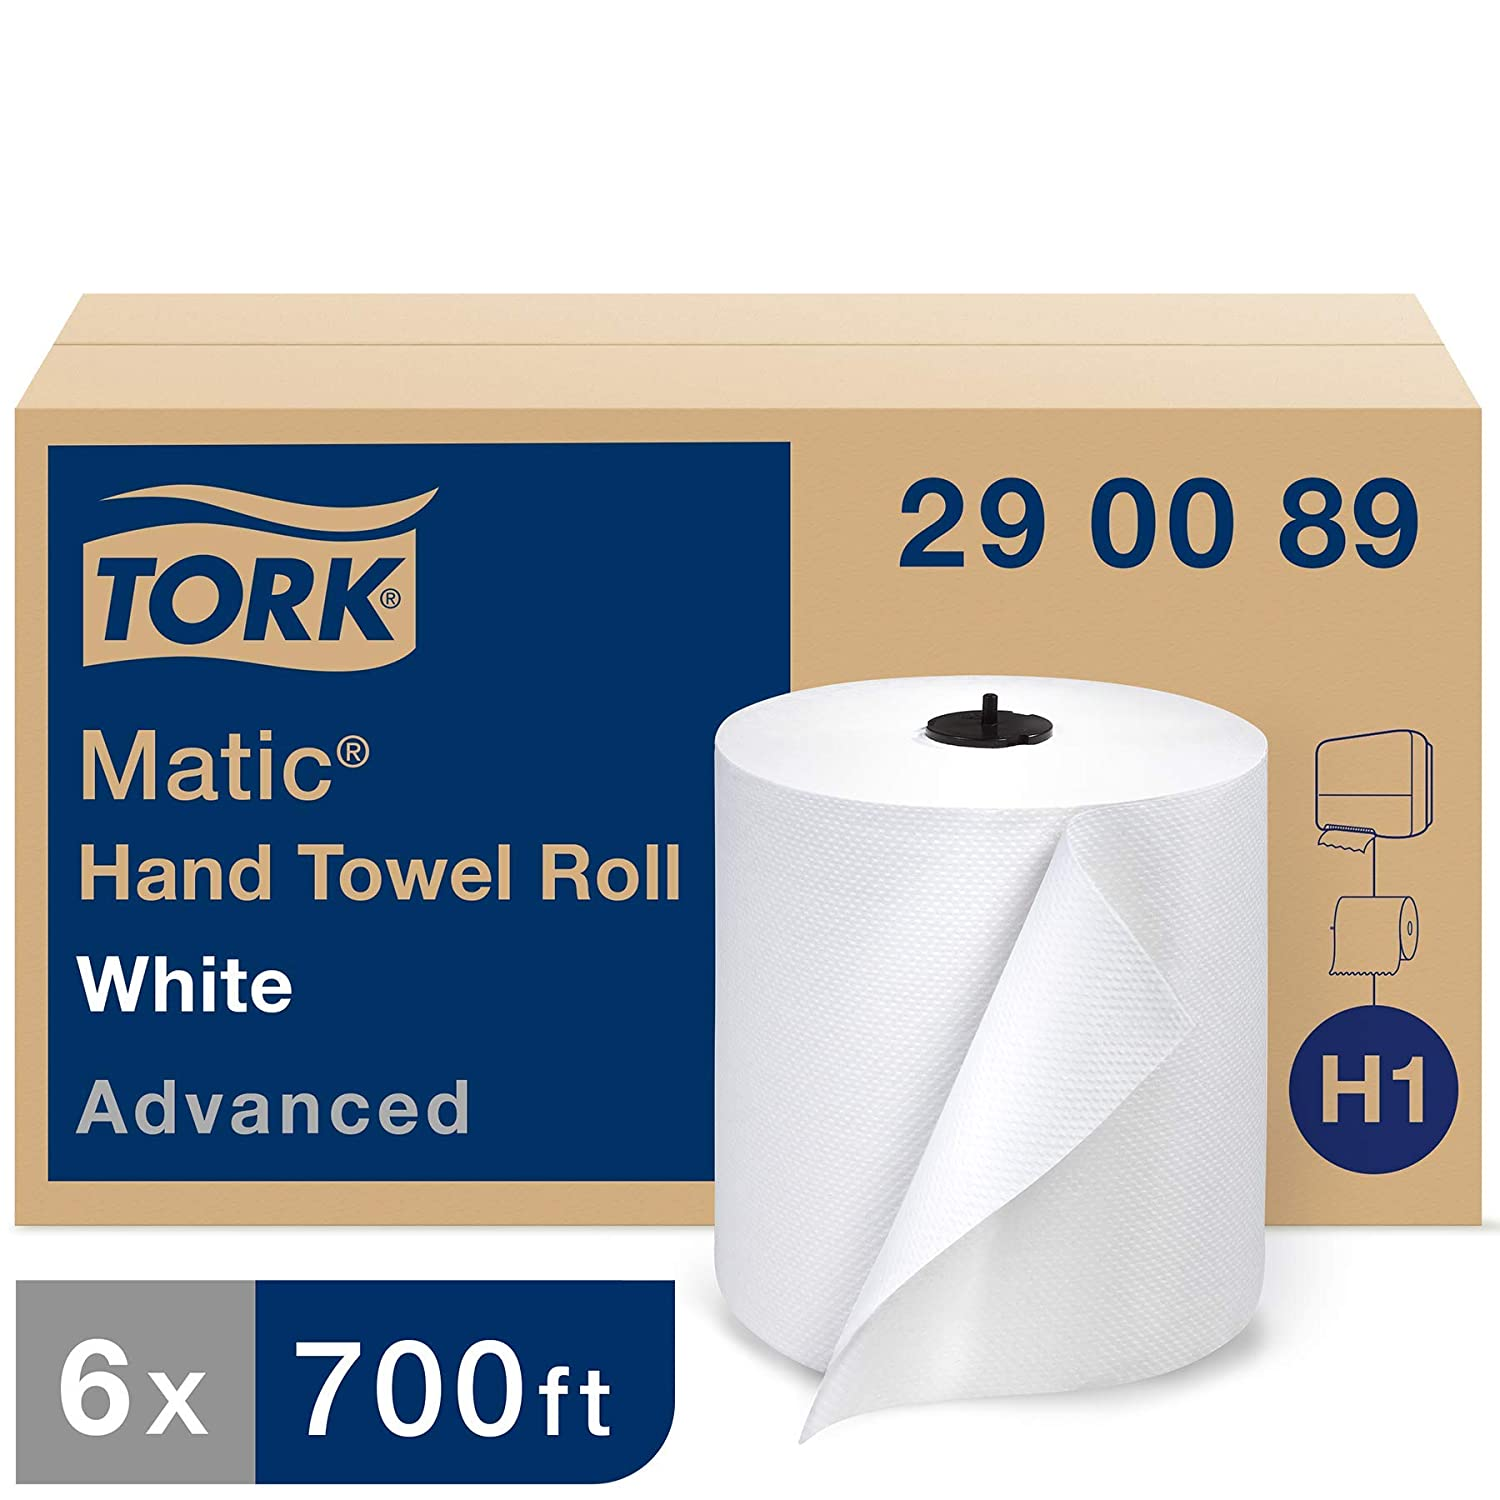 Tork Matic Advanced Paper Towel Roll H1, Paper Hand Towel 290089, 100% Recycled Fiber, High Absorbing, High Capacity 1-Ply, White - 6 Rolls x 700 ft